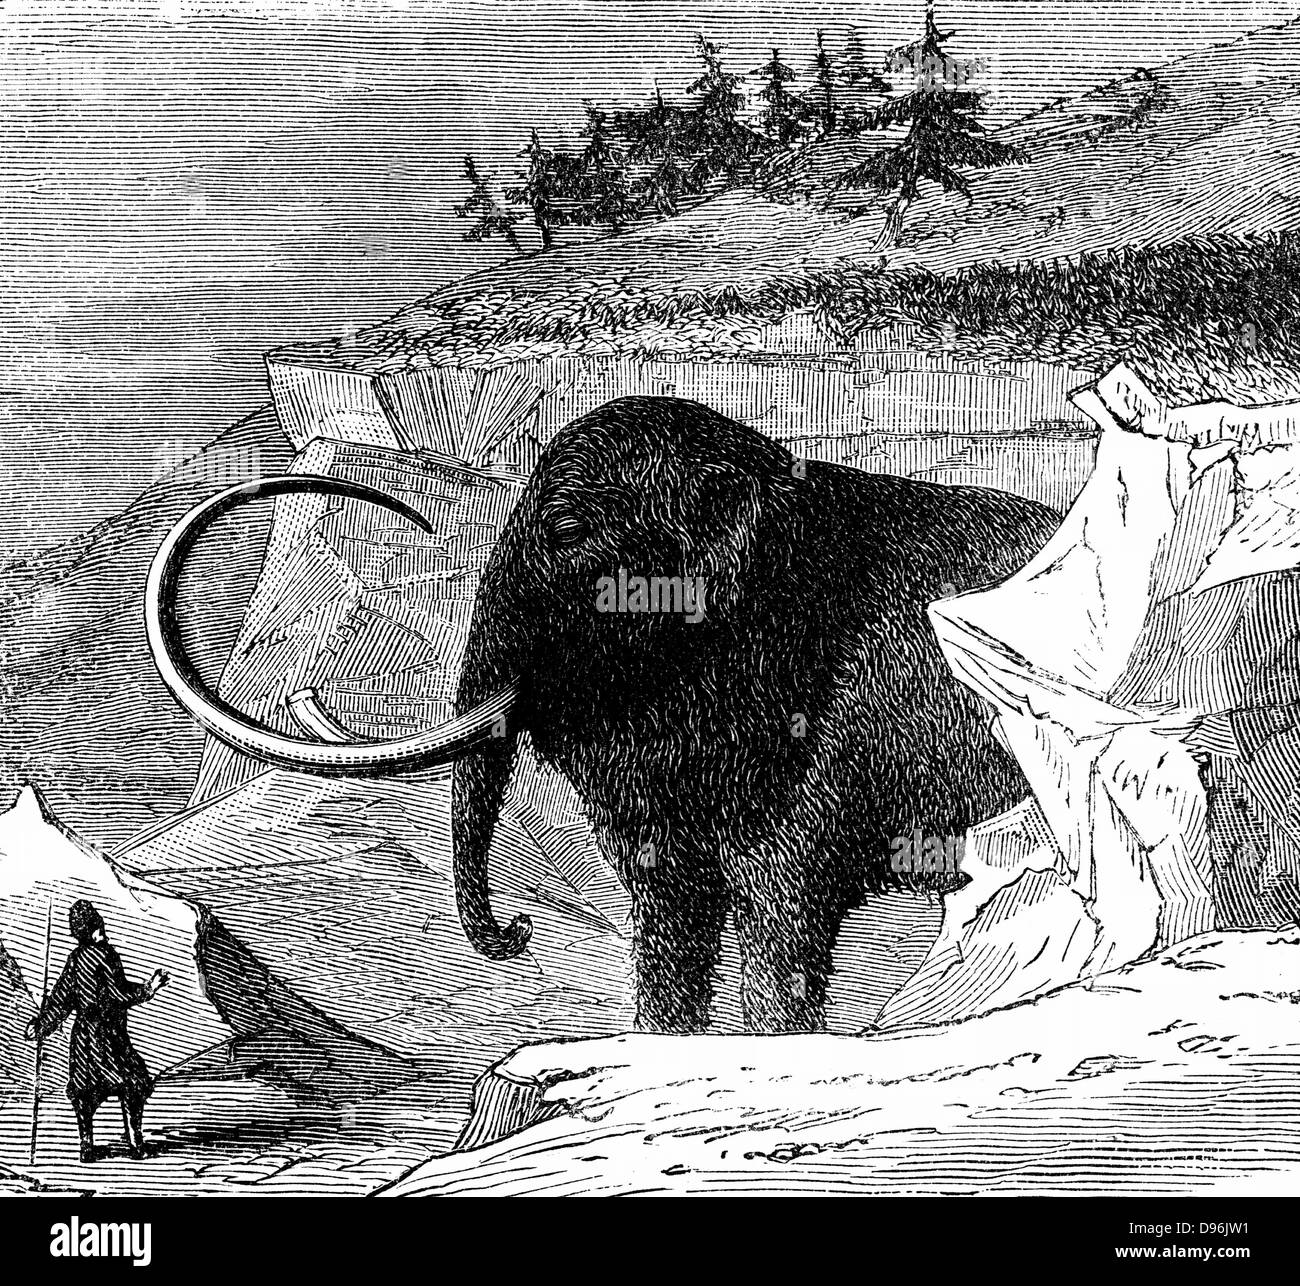 Woolly mammoth approximately 9ft high and 16ft long, discovered frozen in a block of ice in Siberia, 1779. Engraving - Stock Image